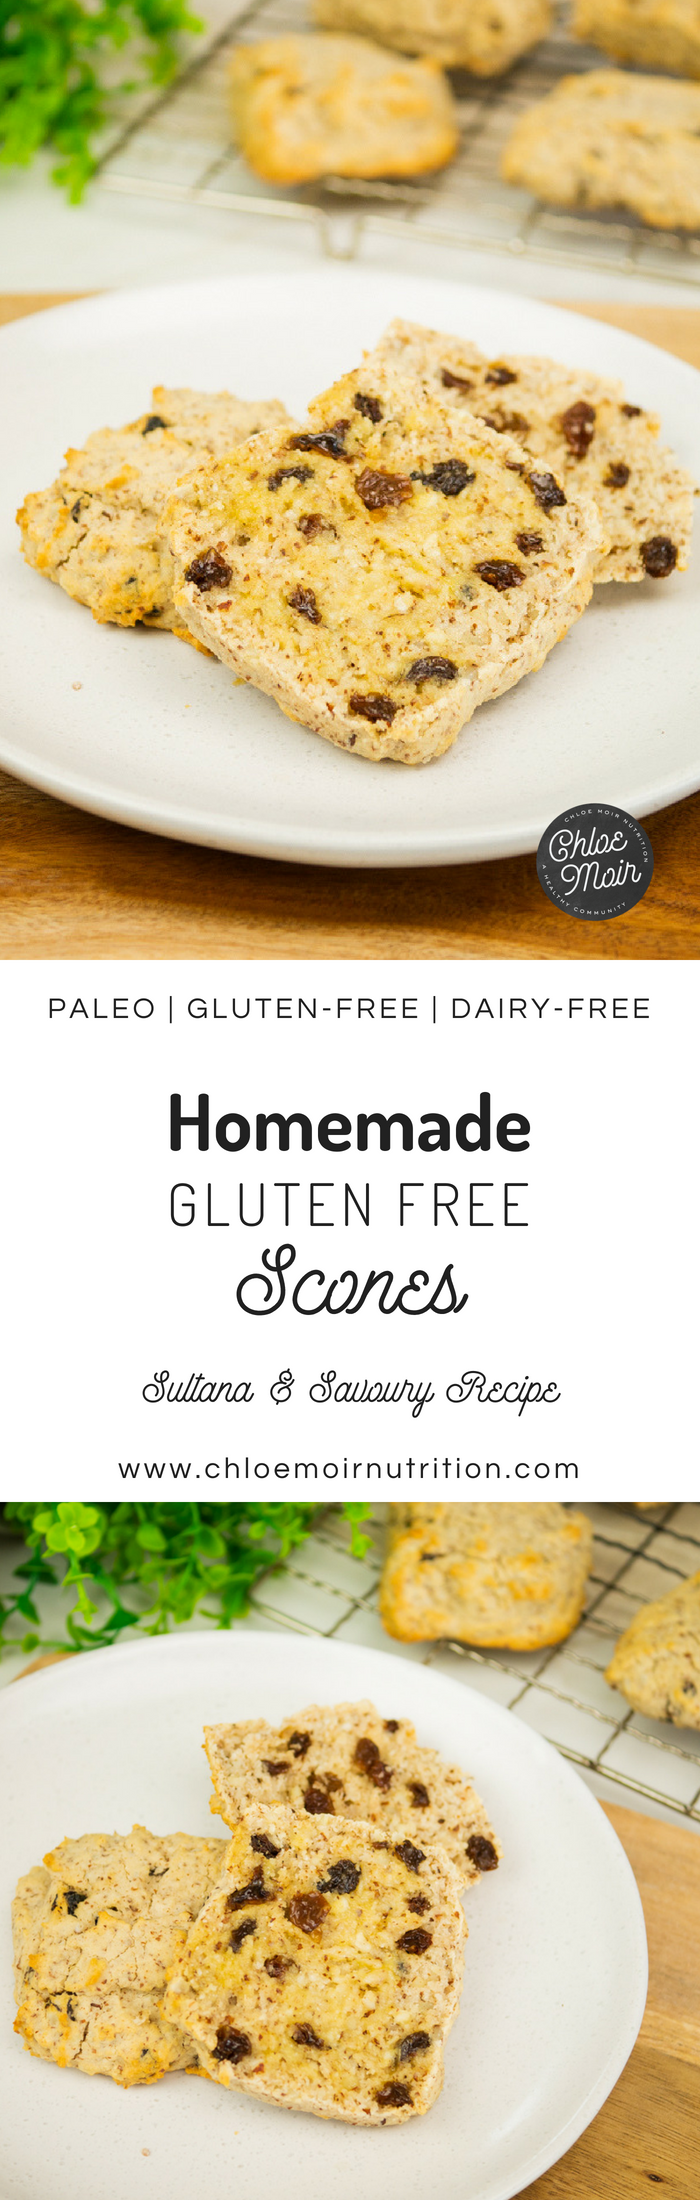 Homemade Gluten Free Scones